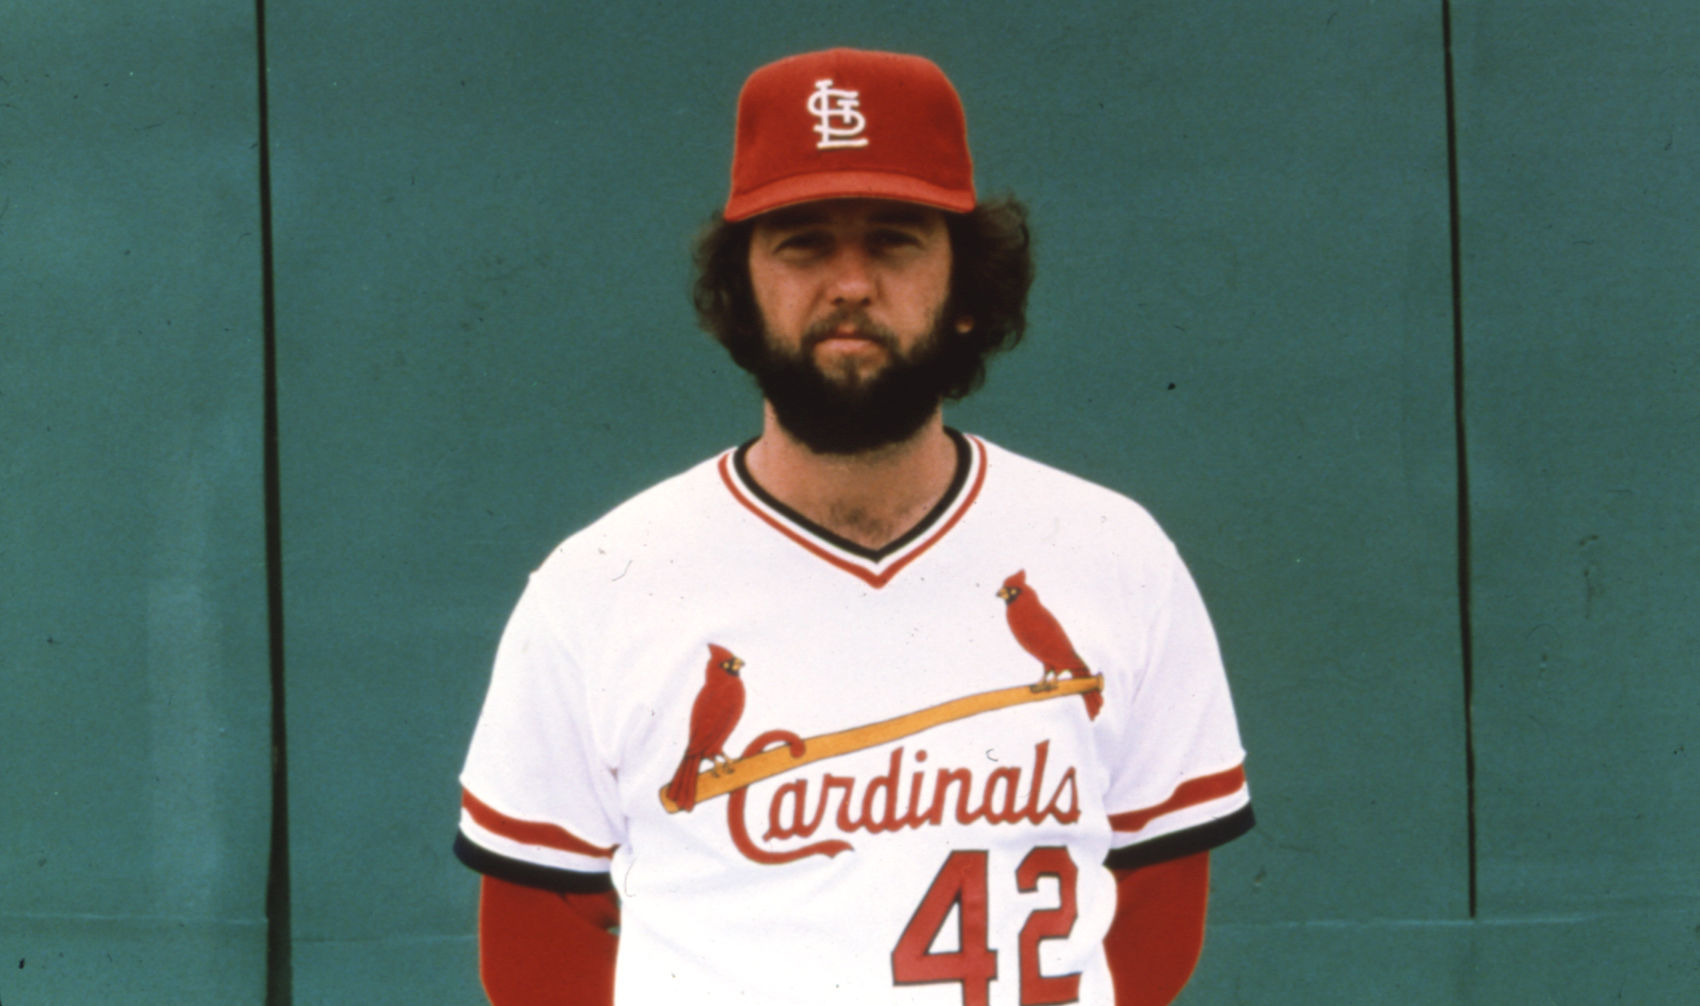 Bruce Sutter Pitched For The Cardinals From 1981 84 And Led St Louis To 1982 World Series Title National Baseball Hall Of Fame Museum